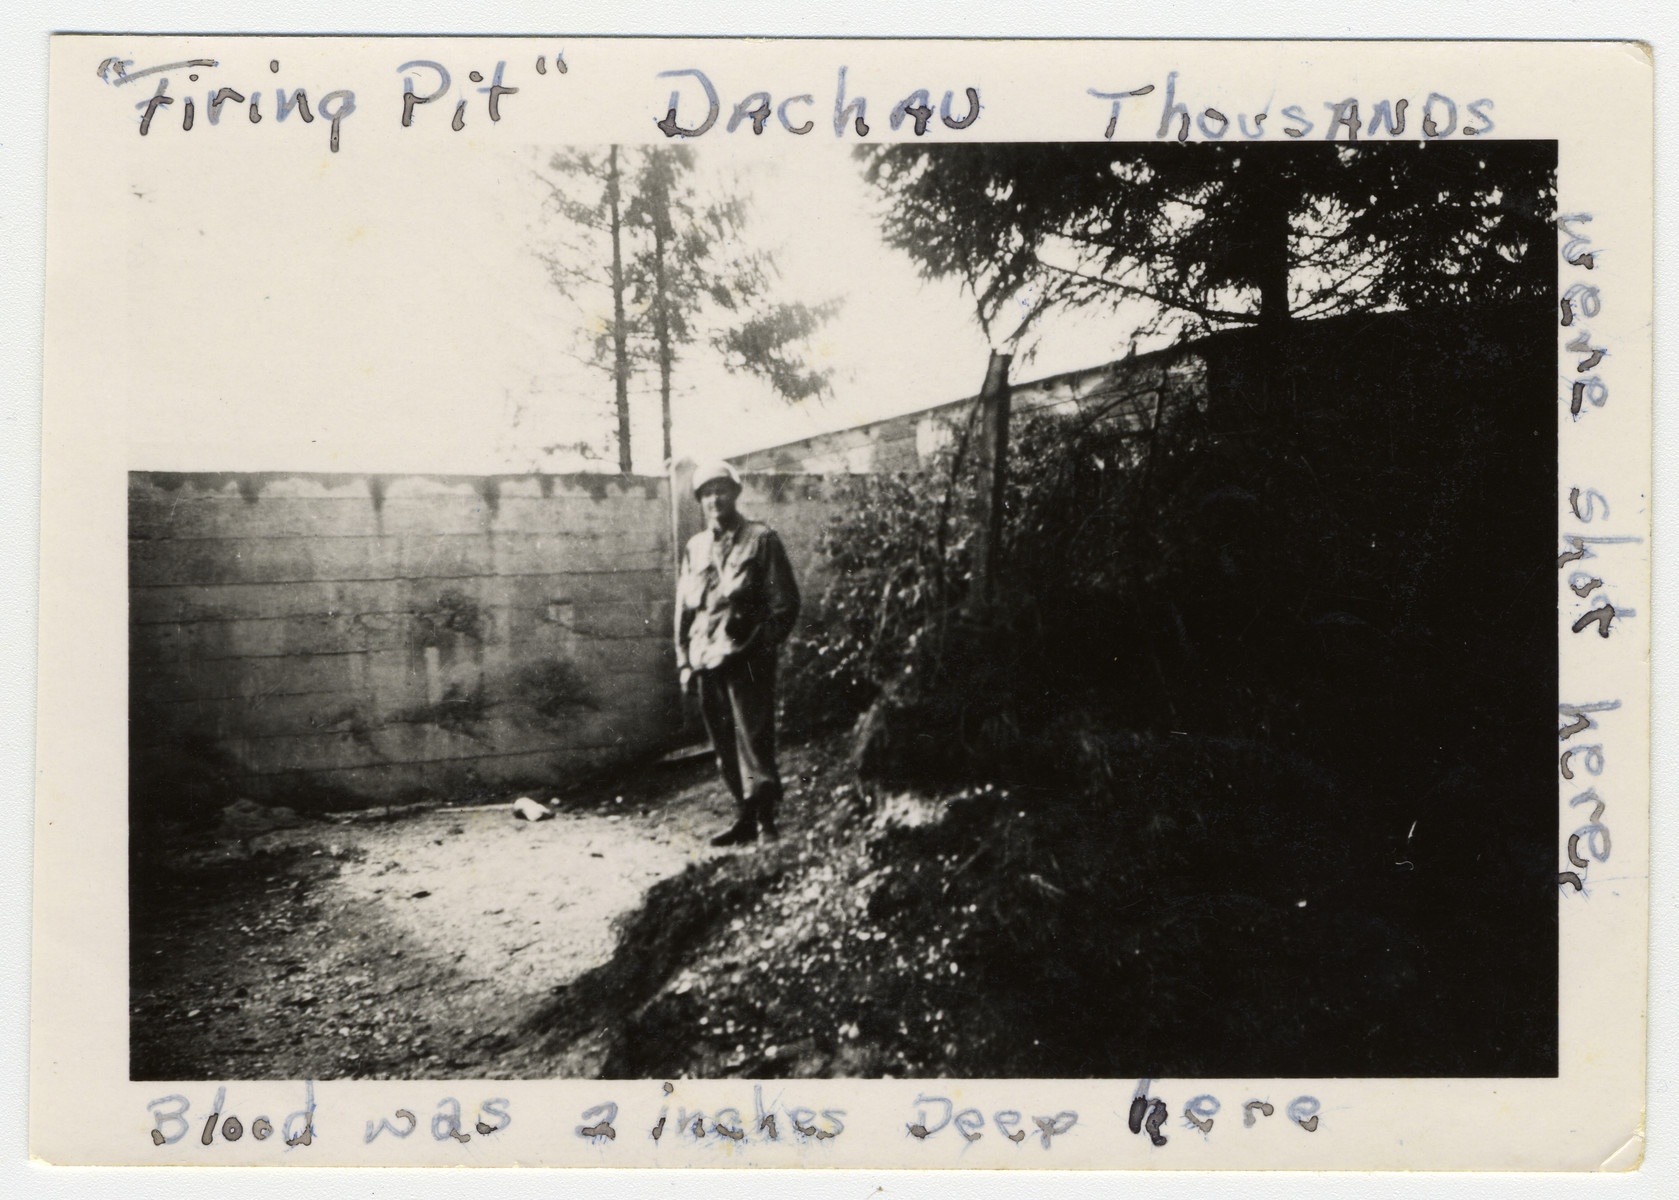 """An American soldier stands next to a wall where prisoners were shot in the Dachau concentration camp.  The original caption reads """"Firing Pit Dachau -- Thousands were shot here.  Blood was two inches deep here."""""""